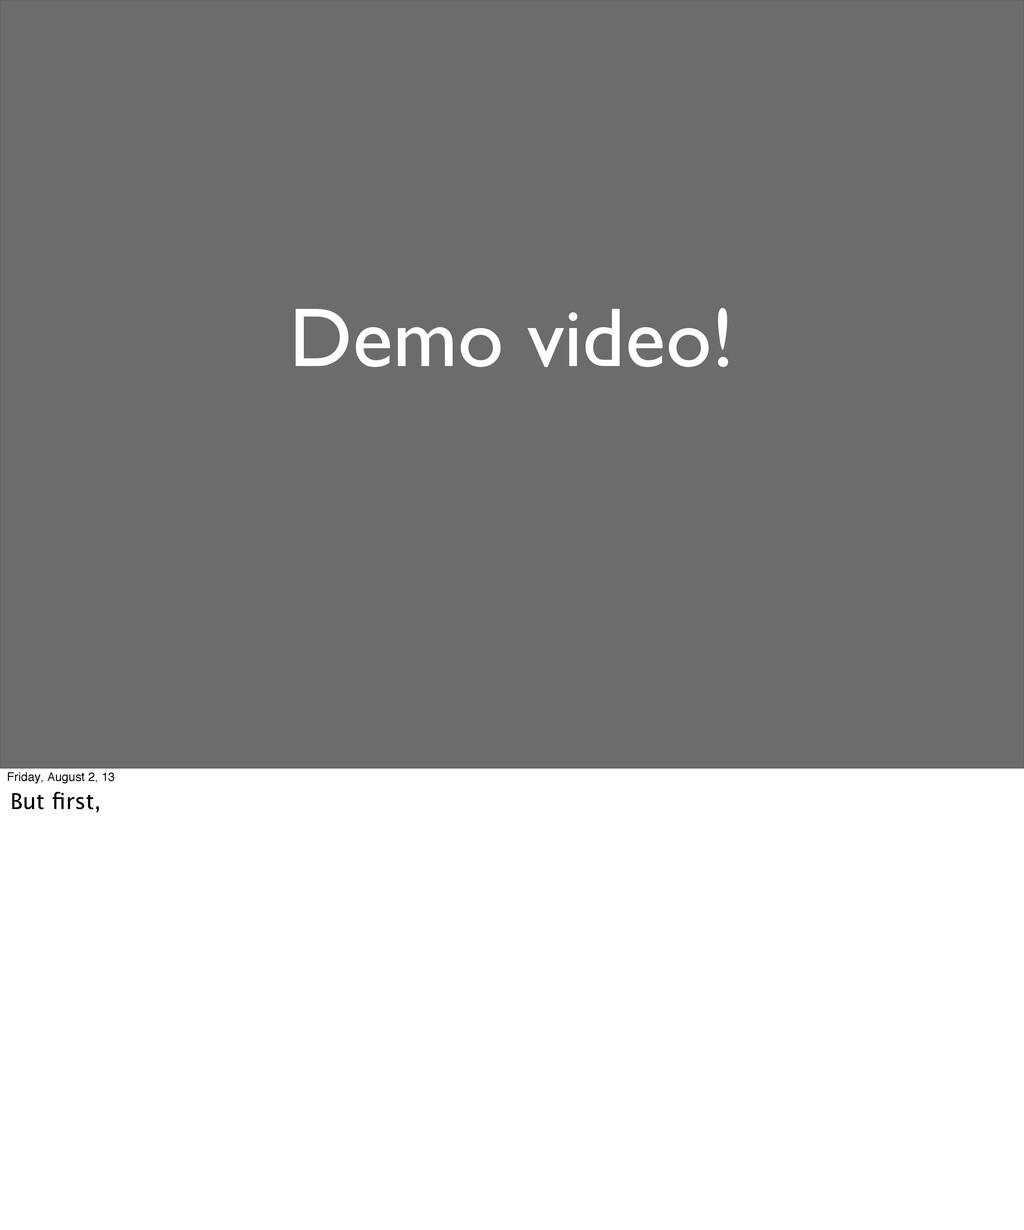 Demo video! Friday, August 2, 13 But first,